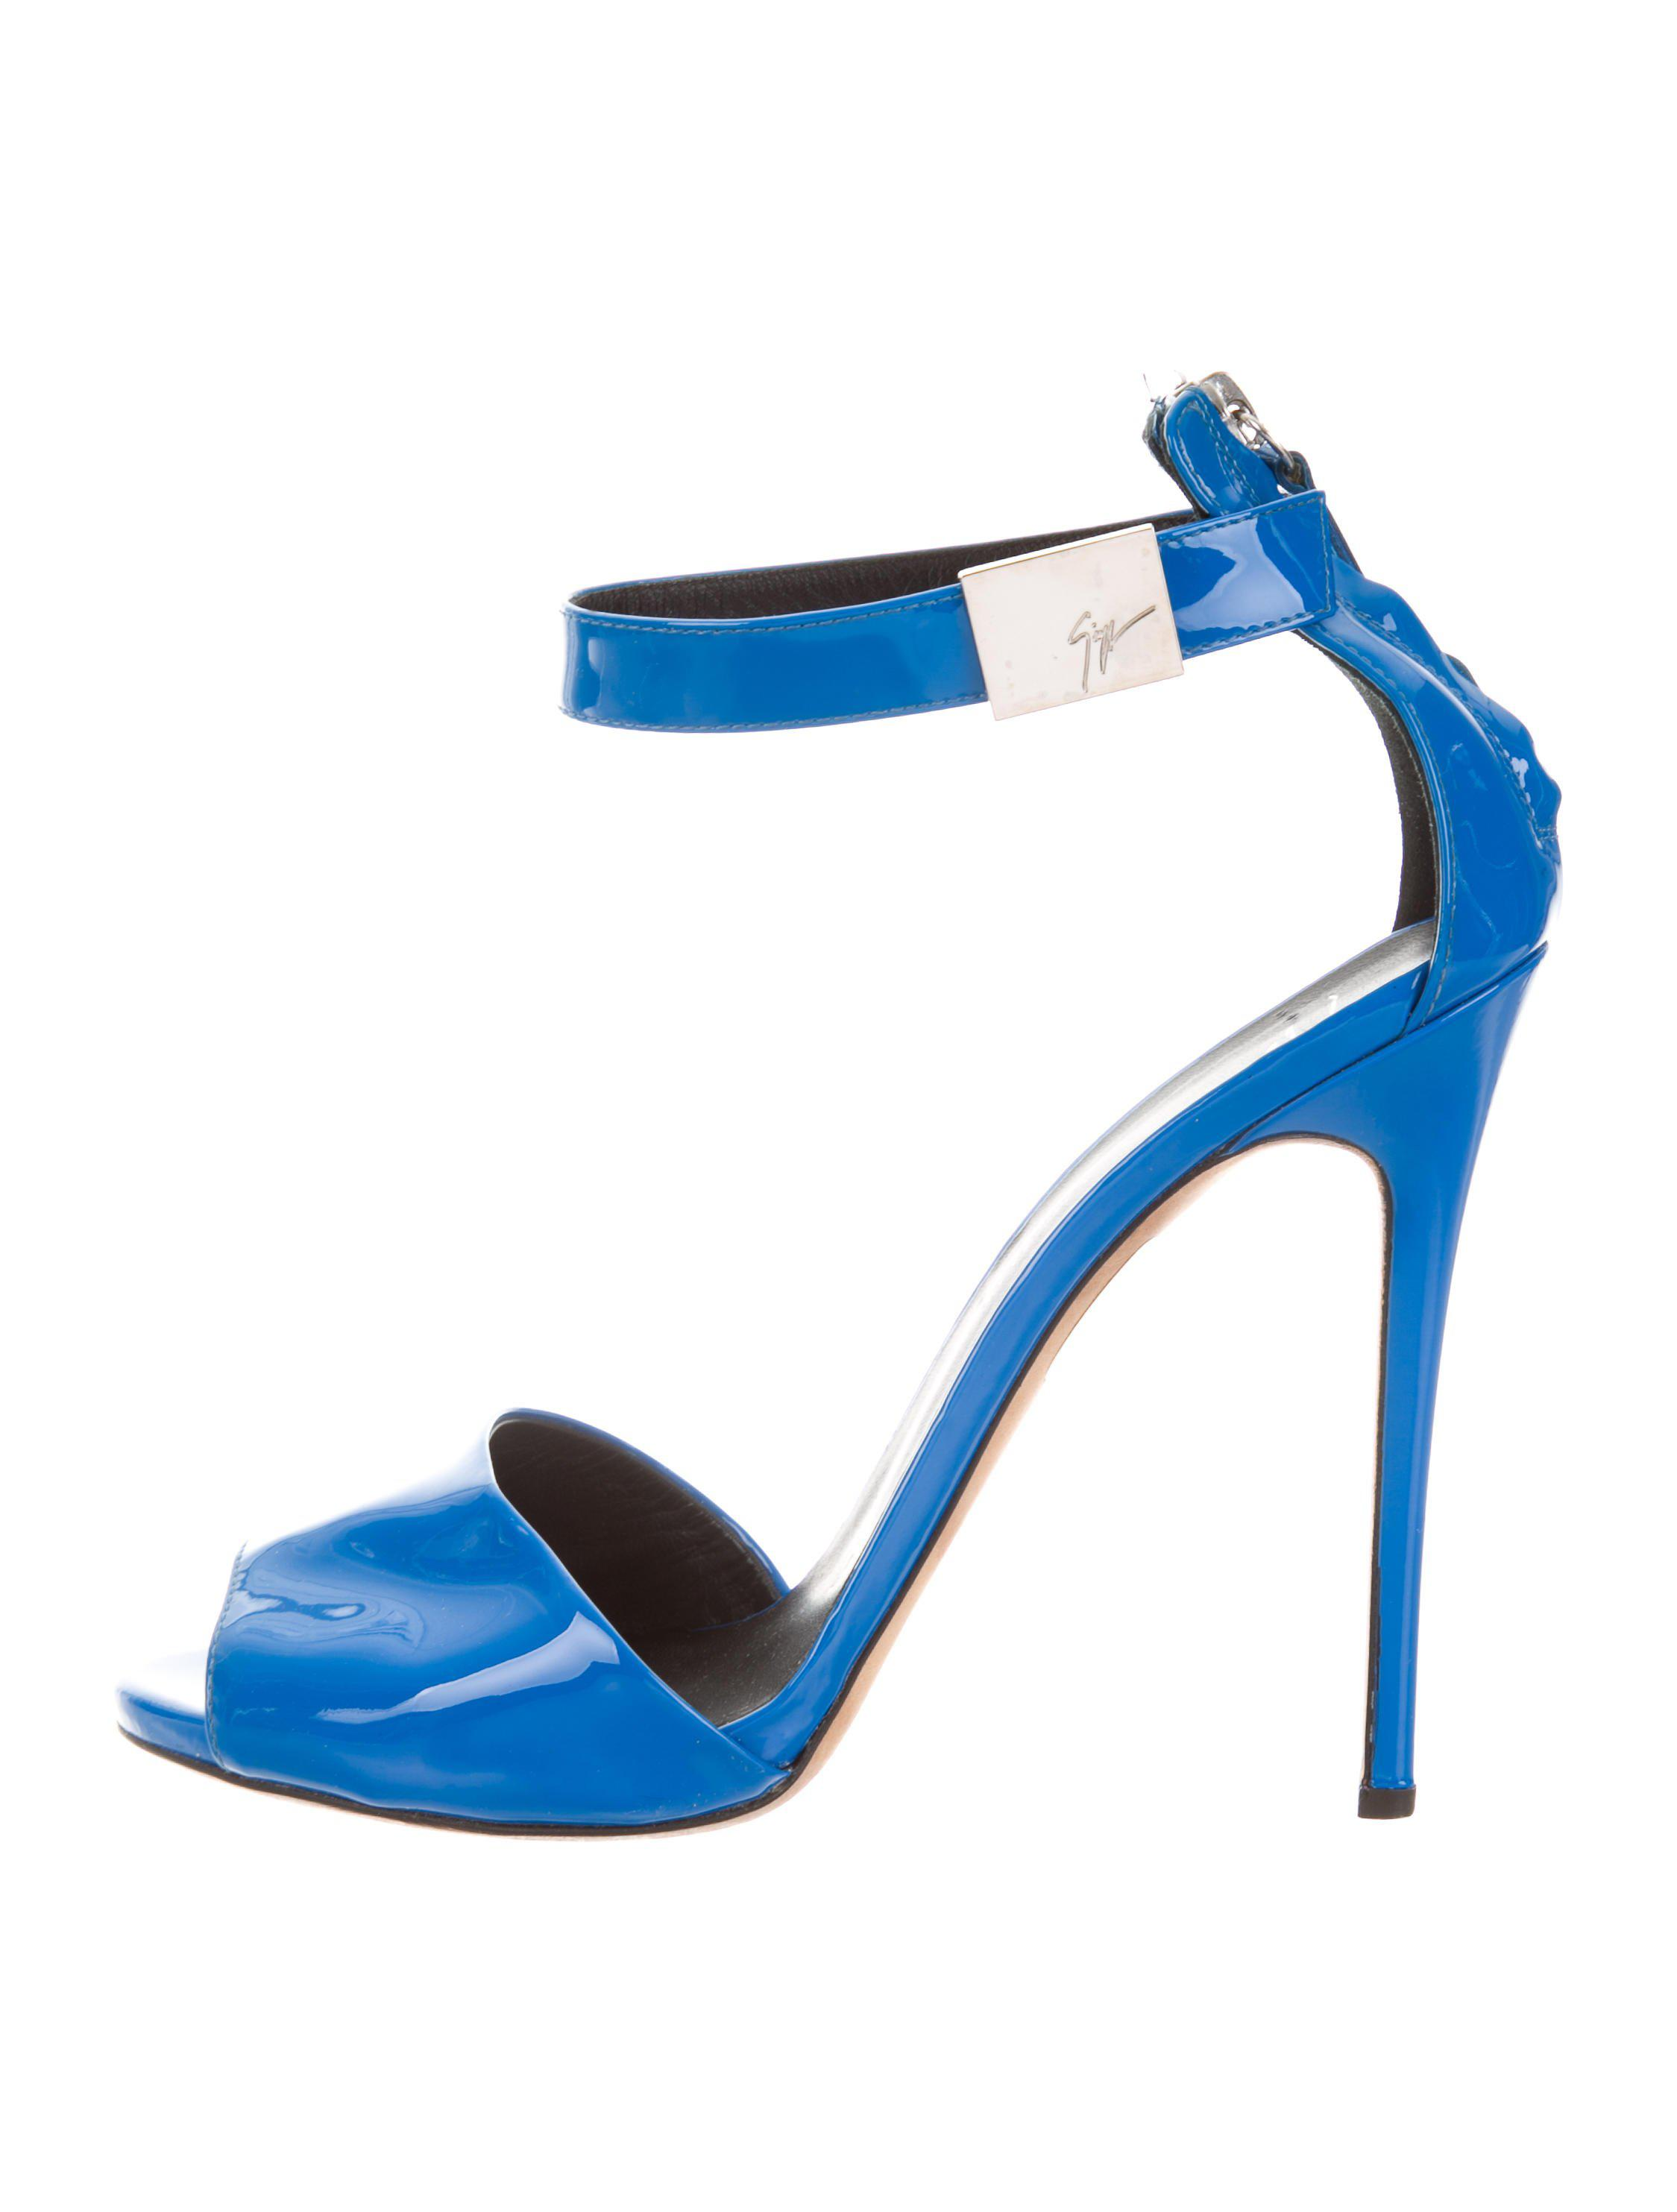 20757d0d8bc3 Lyst - Giuseppe Zanotti Patent Leather Ankle Strap Sandals in Blue